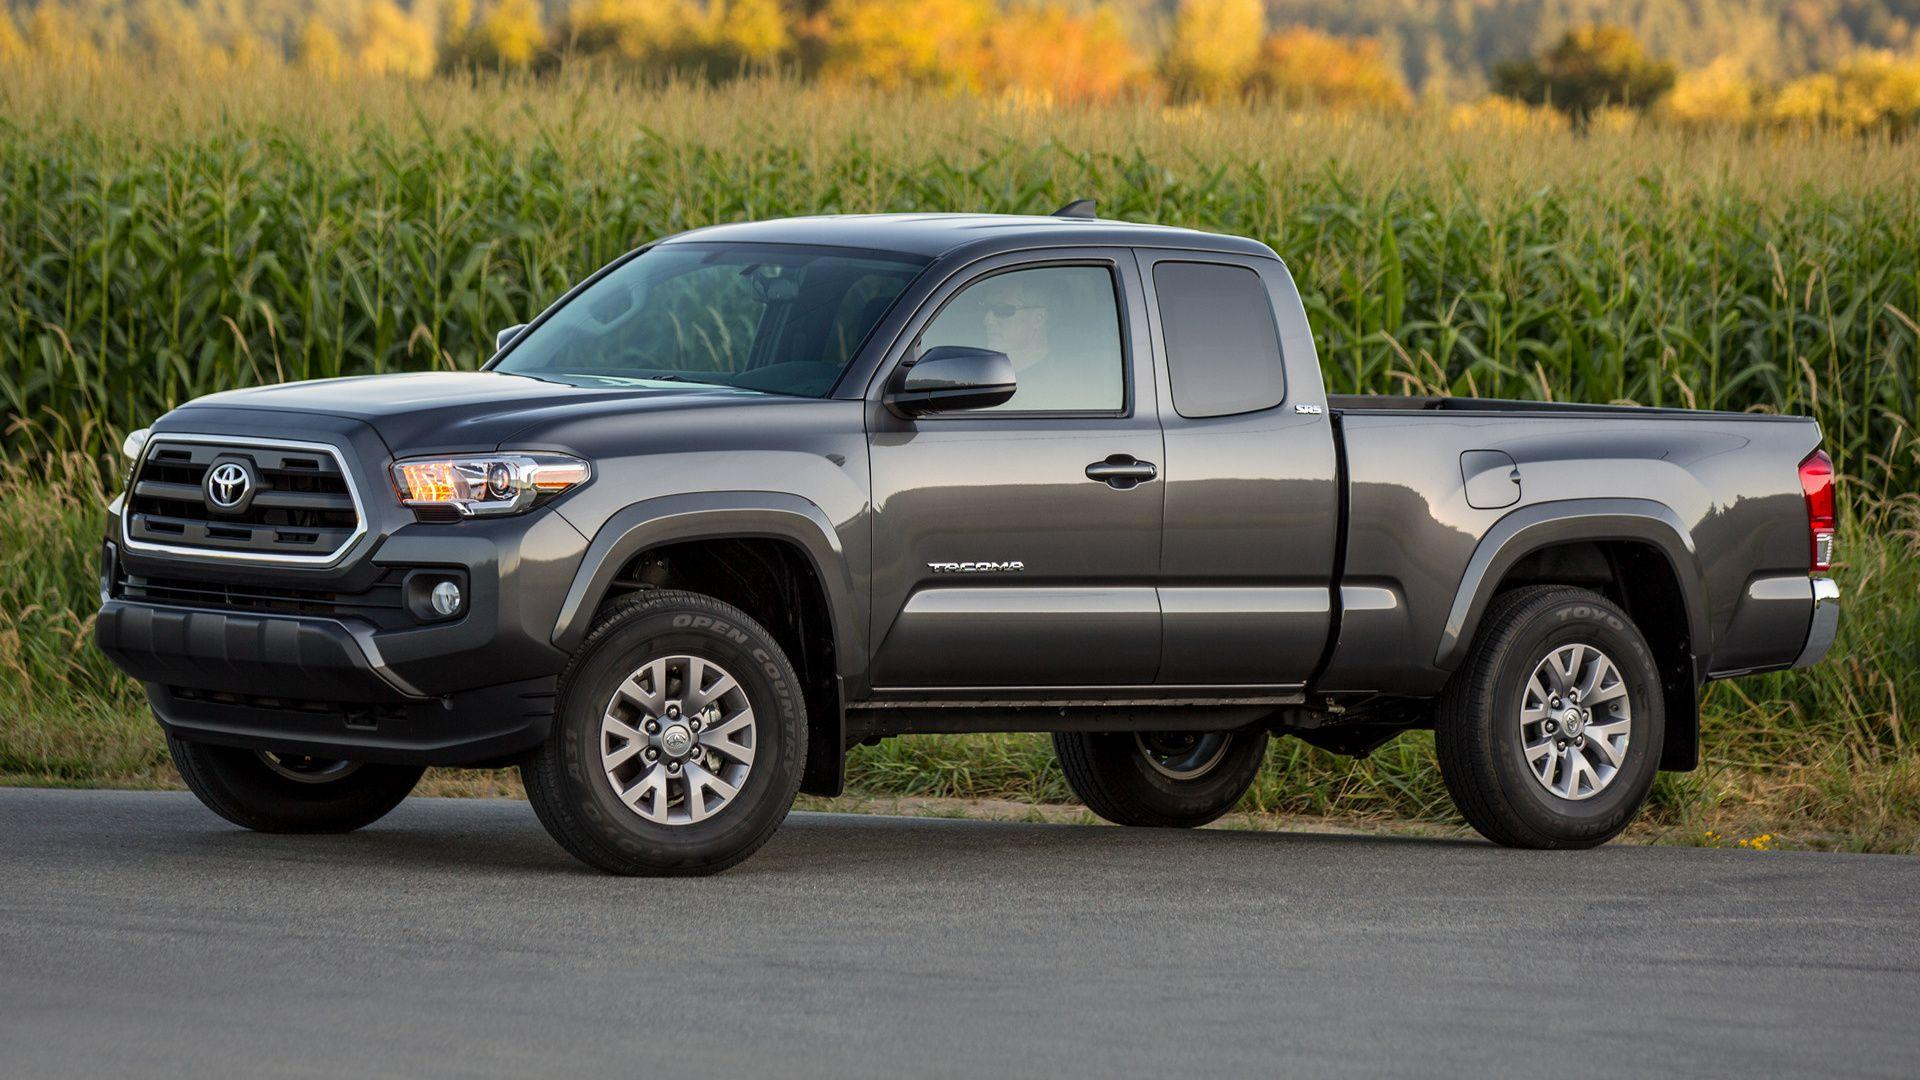 Toyota Tacoma SR5 Access Cab (2016) Wallpapers and HD Images - Car ...